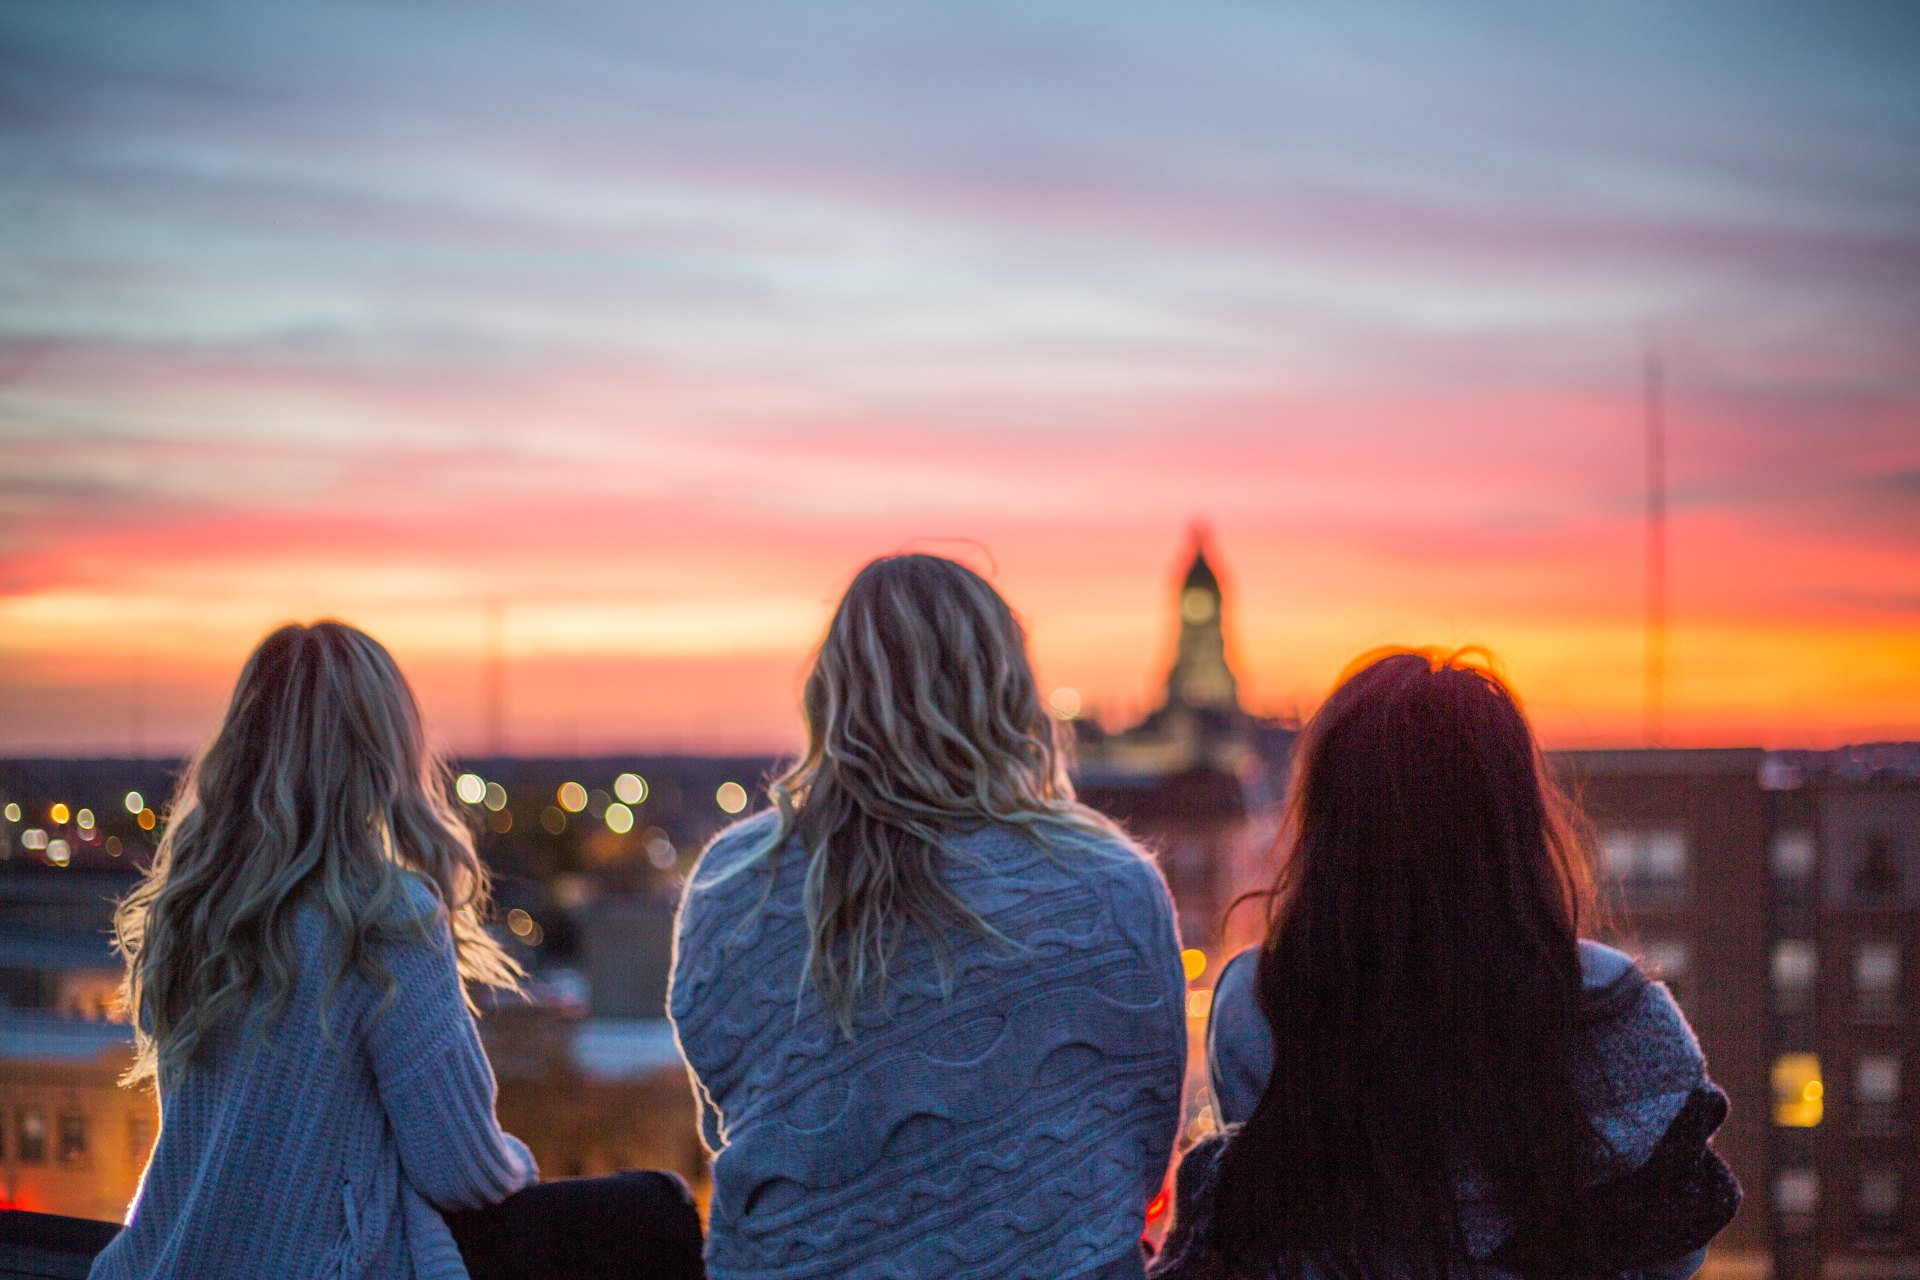 44 Tips That Socially Awkward 20-Somethings Should Use To Make More Friends